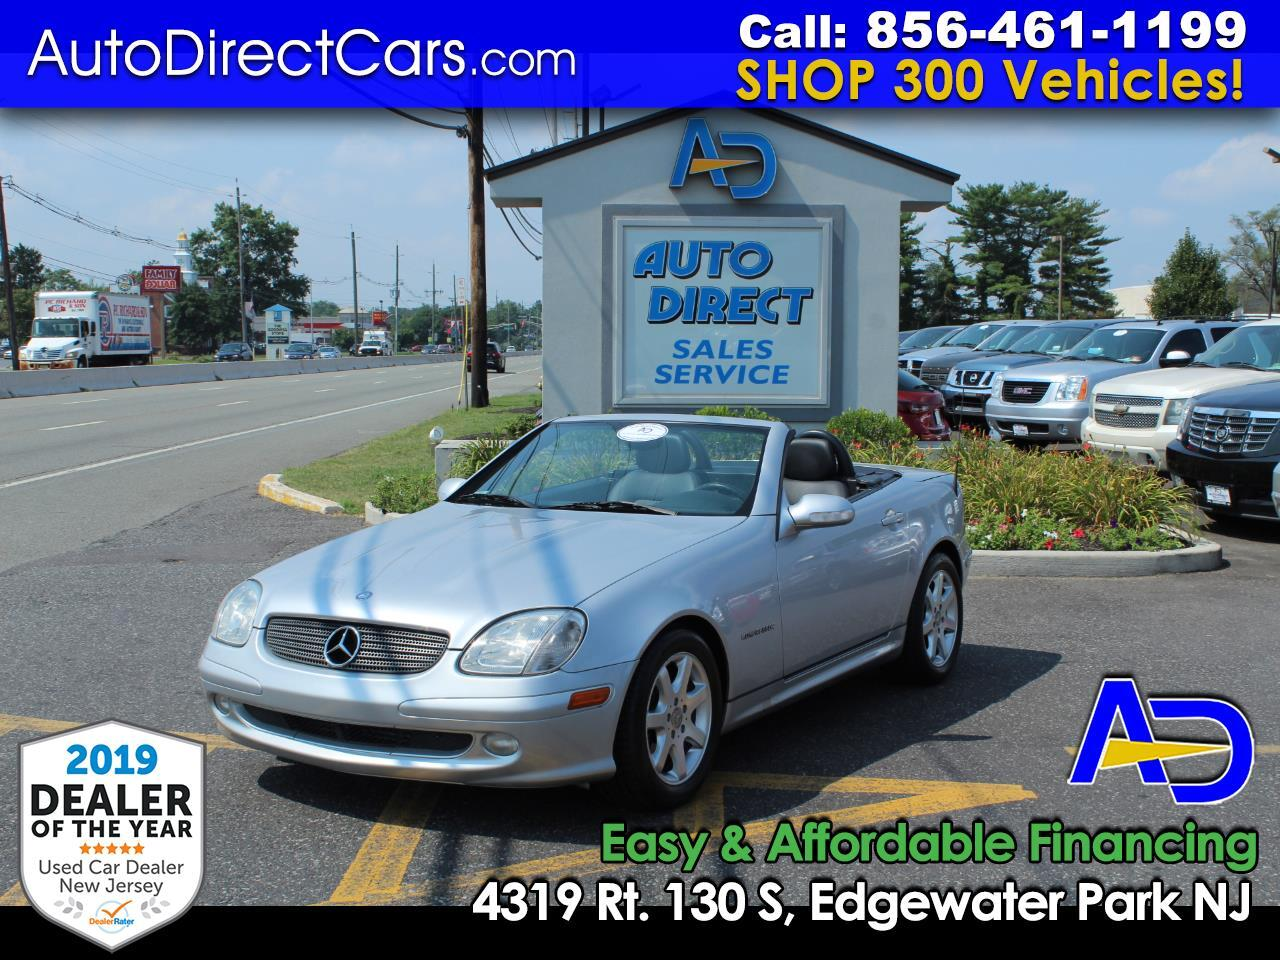 2003 Mercedes-Benz SLK-Class 2dr Kompressor Roadster 2.3L